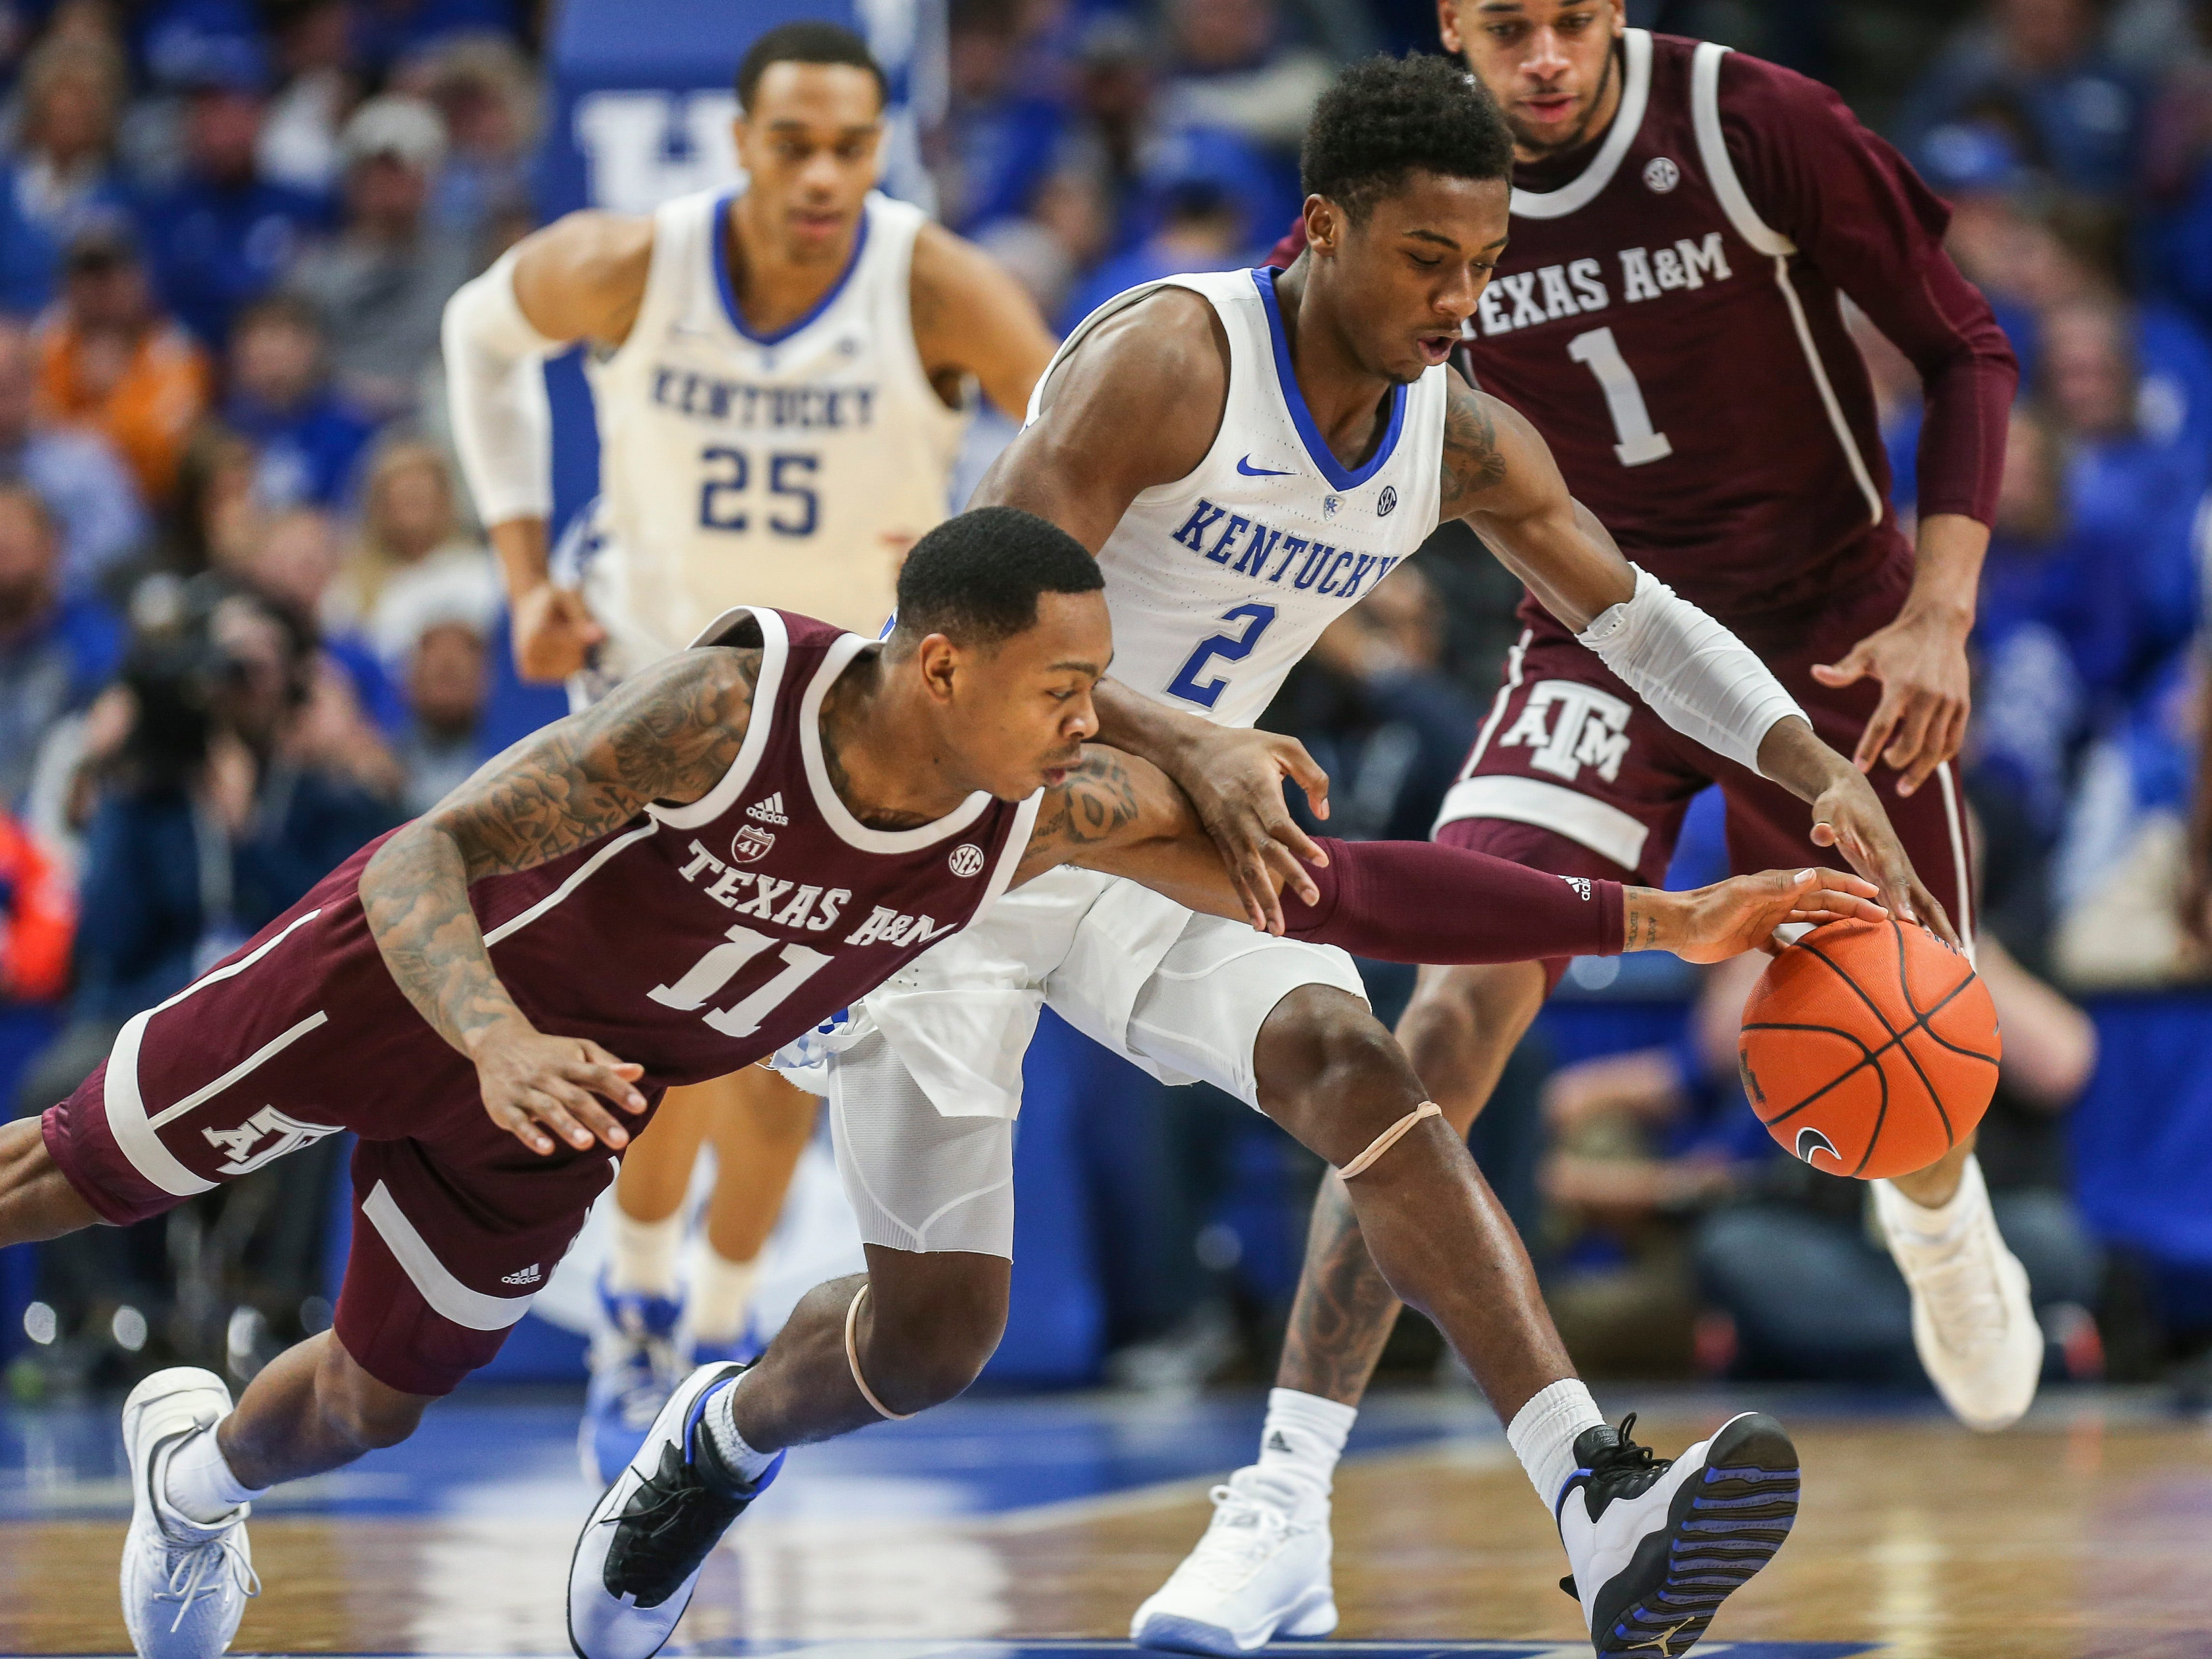 Kentucky's Ashton Hagans pressures Texas A&M's Wendell Mitchell for the ball in the second half. Hagans finished with 18 points and five steals, including this one.  January 8, 2019